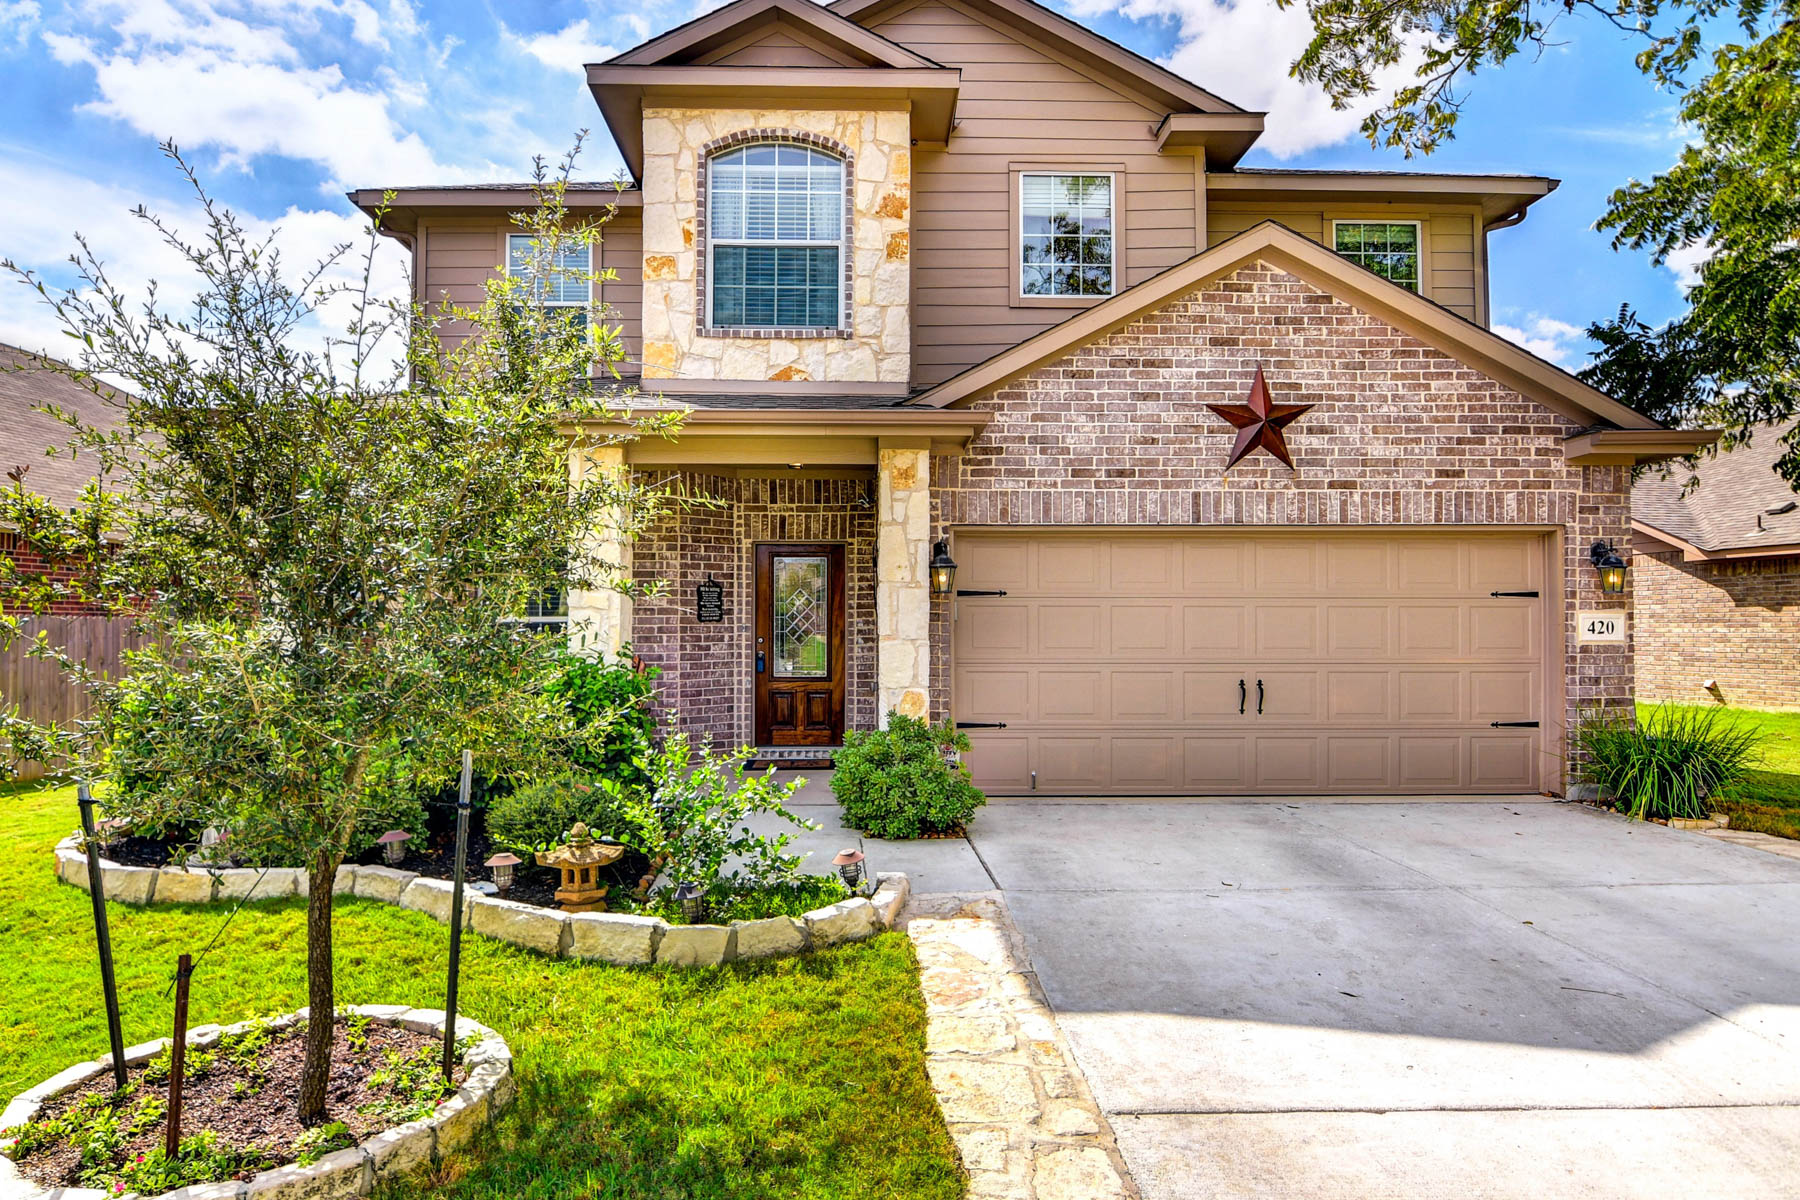 Single Family Home for Sale at Gorgeous Home in Buffalo Crossing 420 Bison Ln Cibolo, Texas 78108 United States